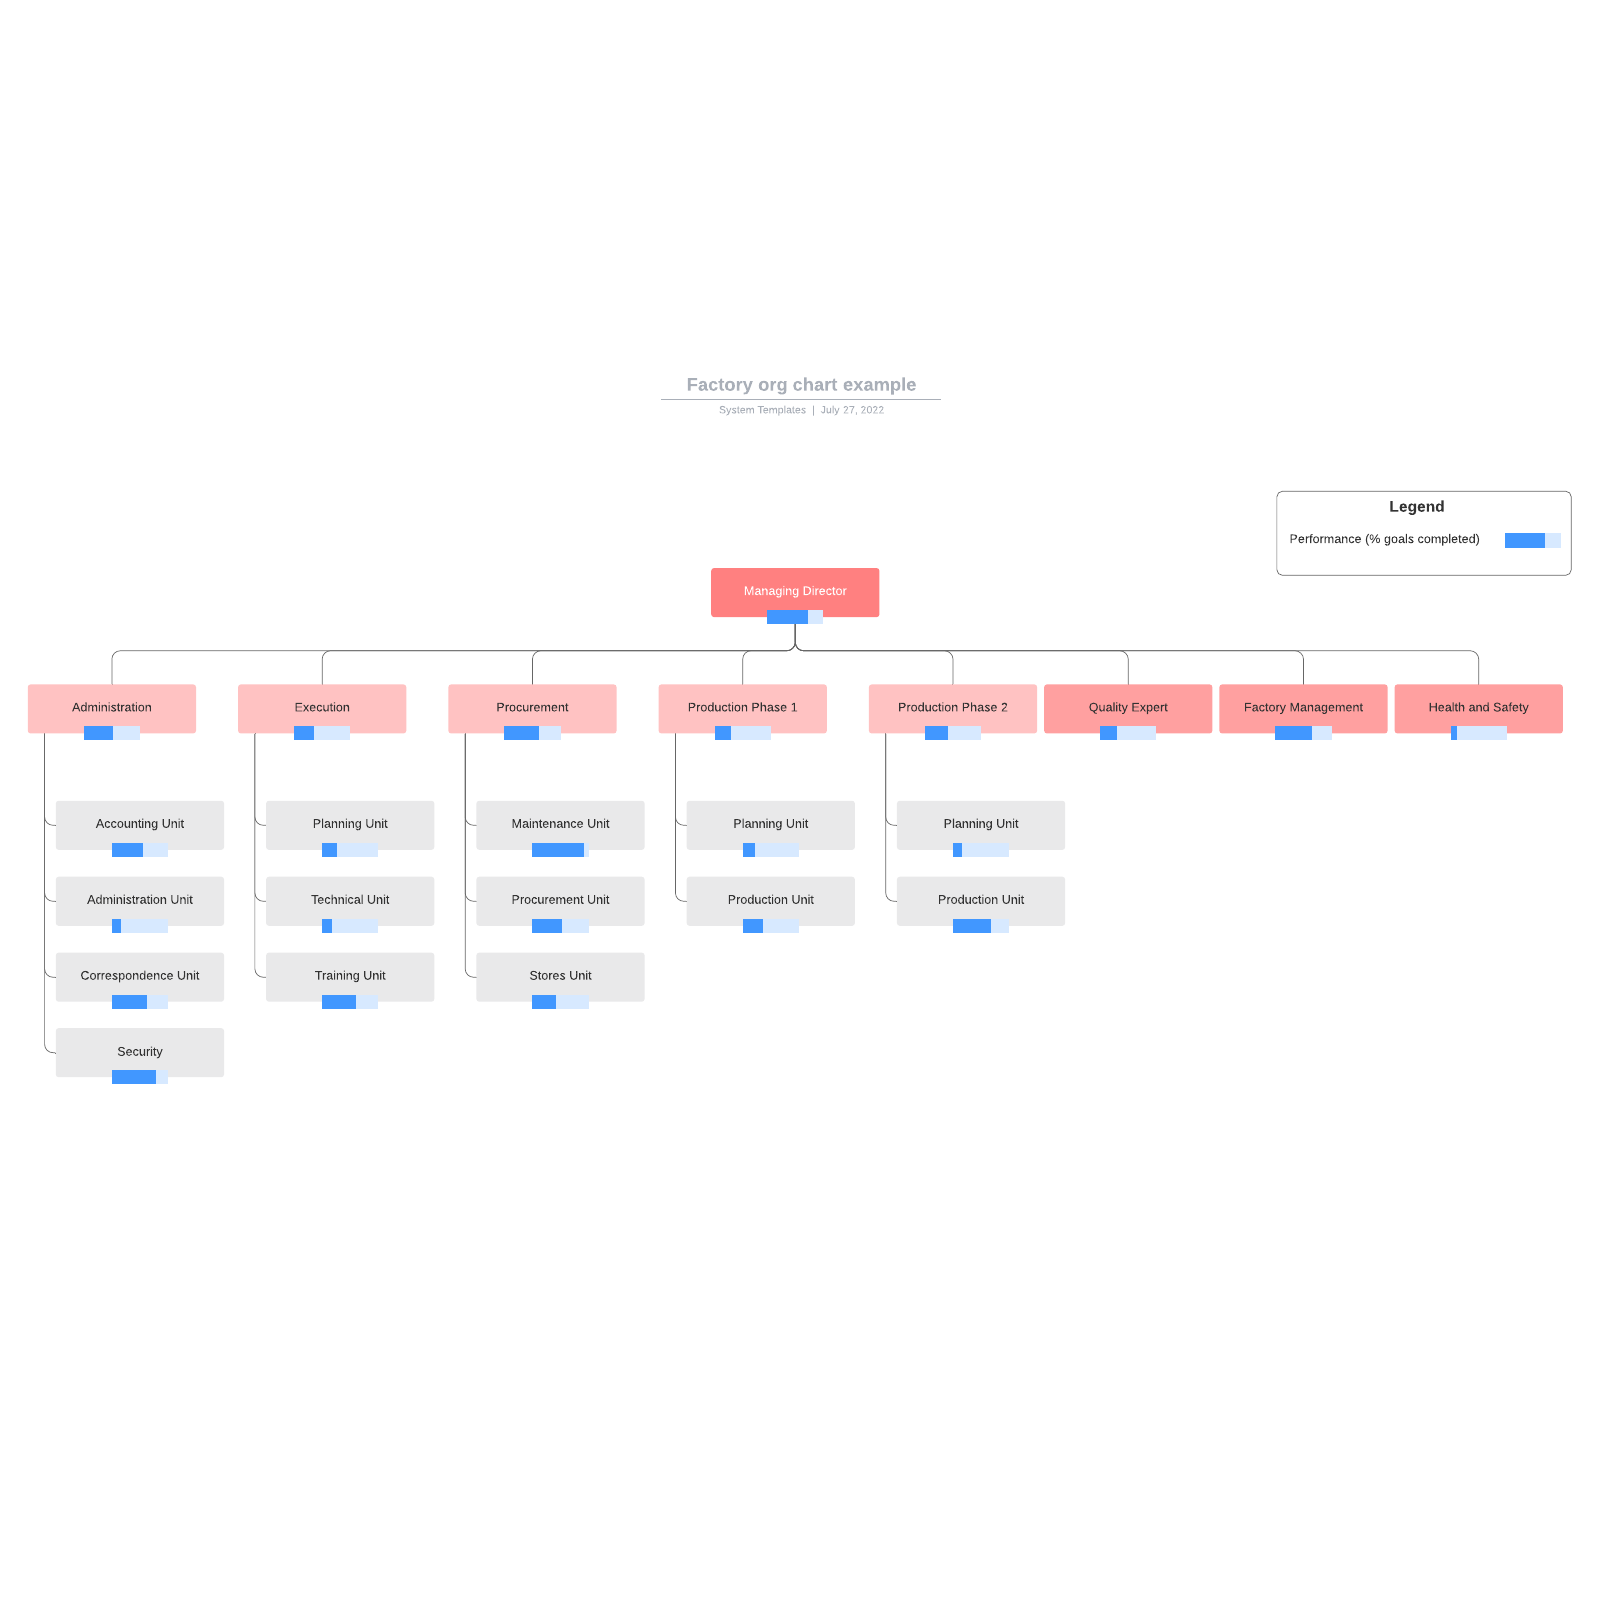 Factory org chart example